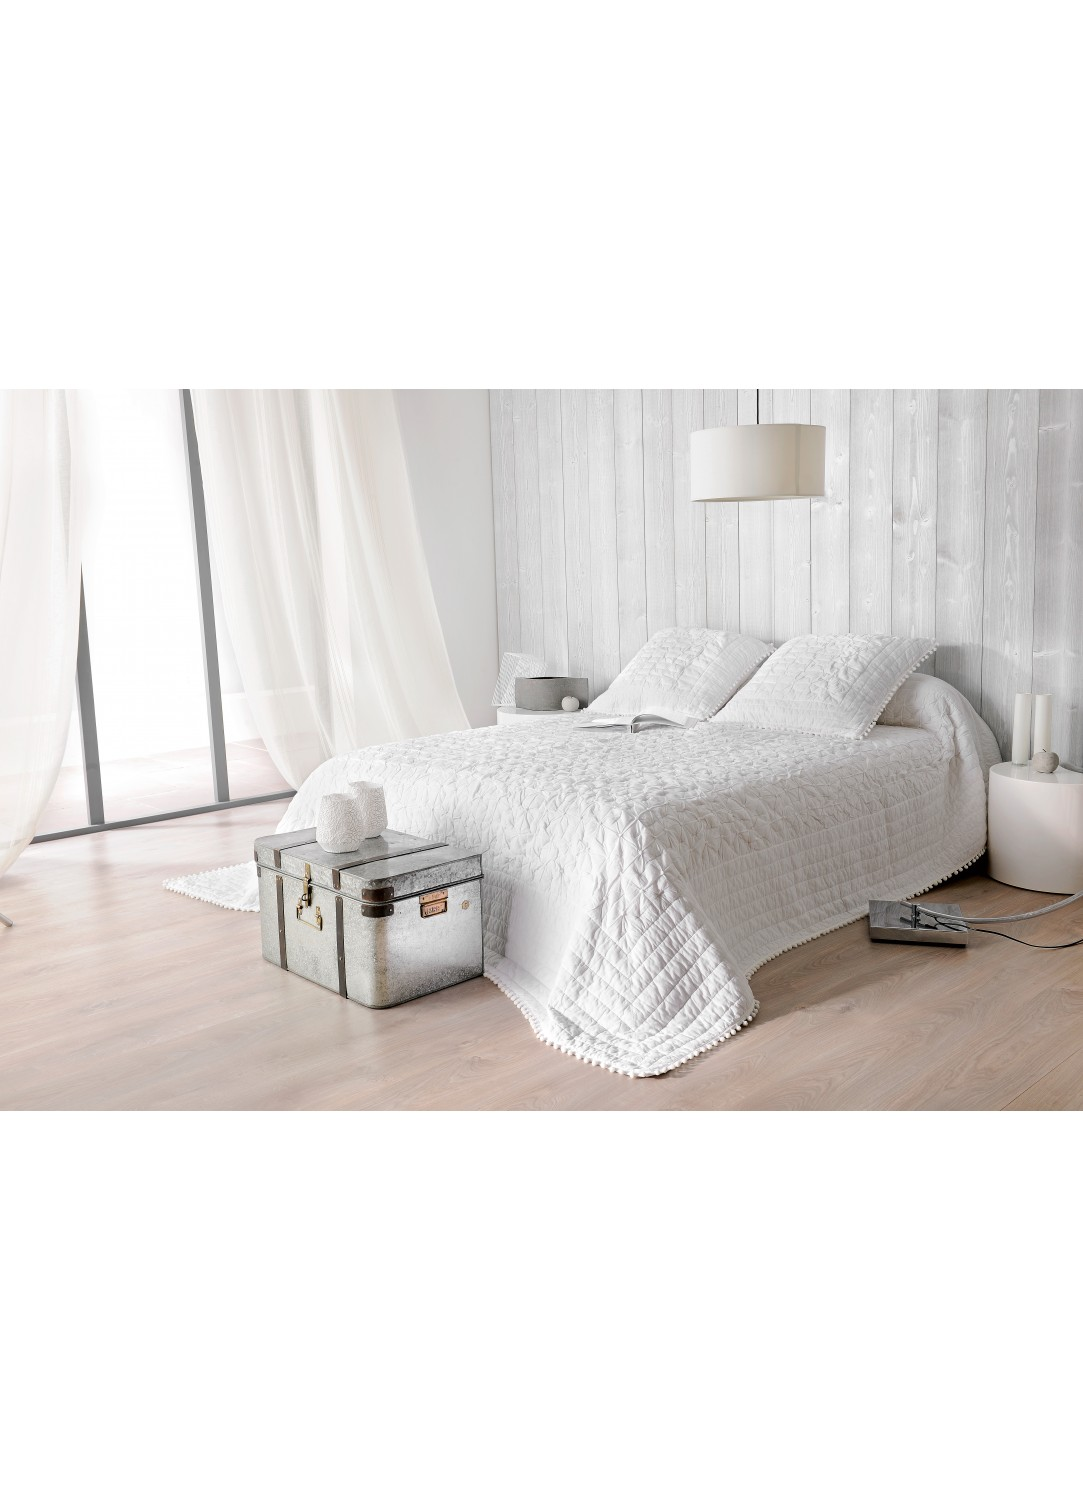 jete de lit emmanuelle 240 x 260 cm avec taies d oreiller assorties blanc homemaison. Black Bedroom Furniture Sets. Home Design Ideas